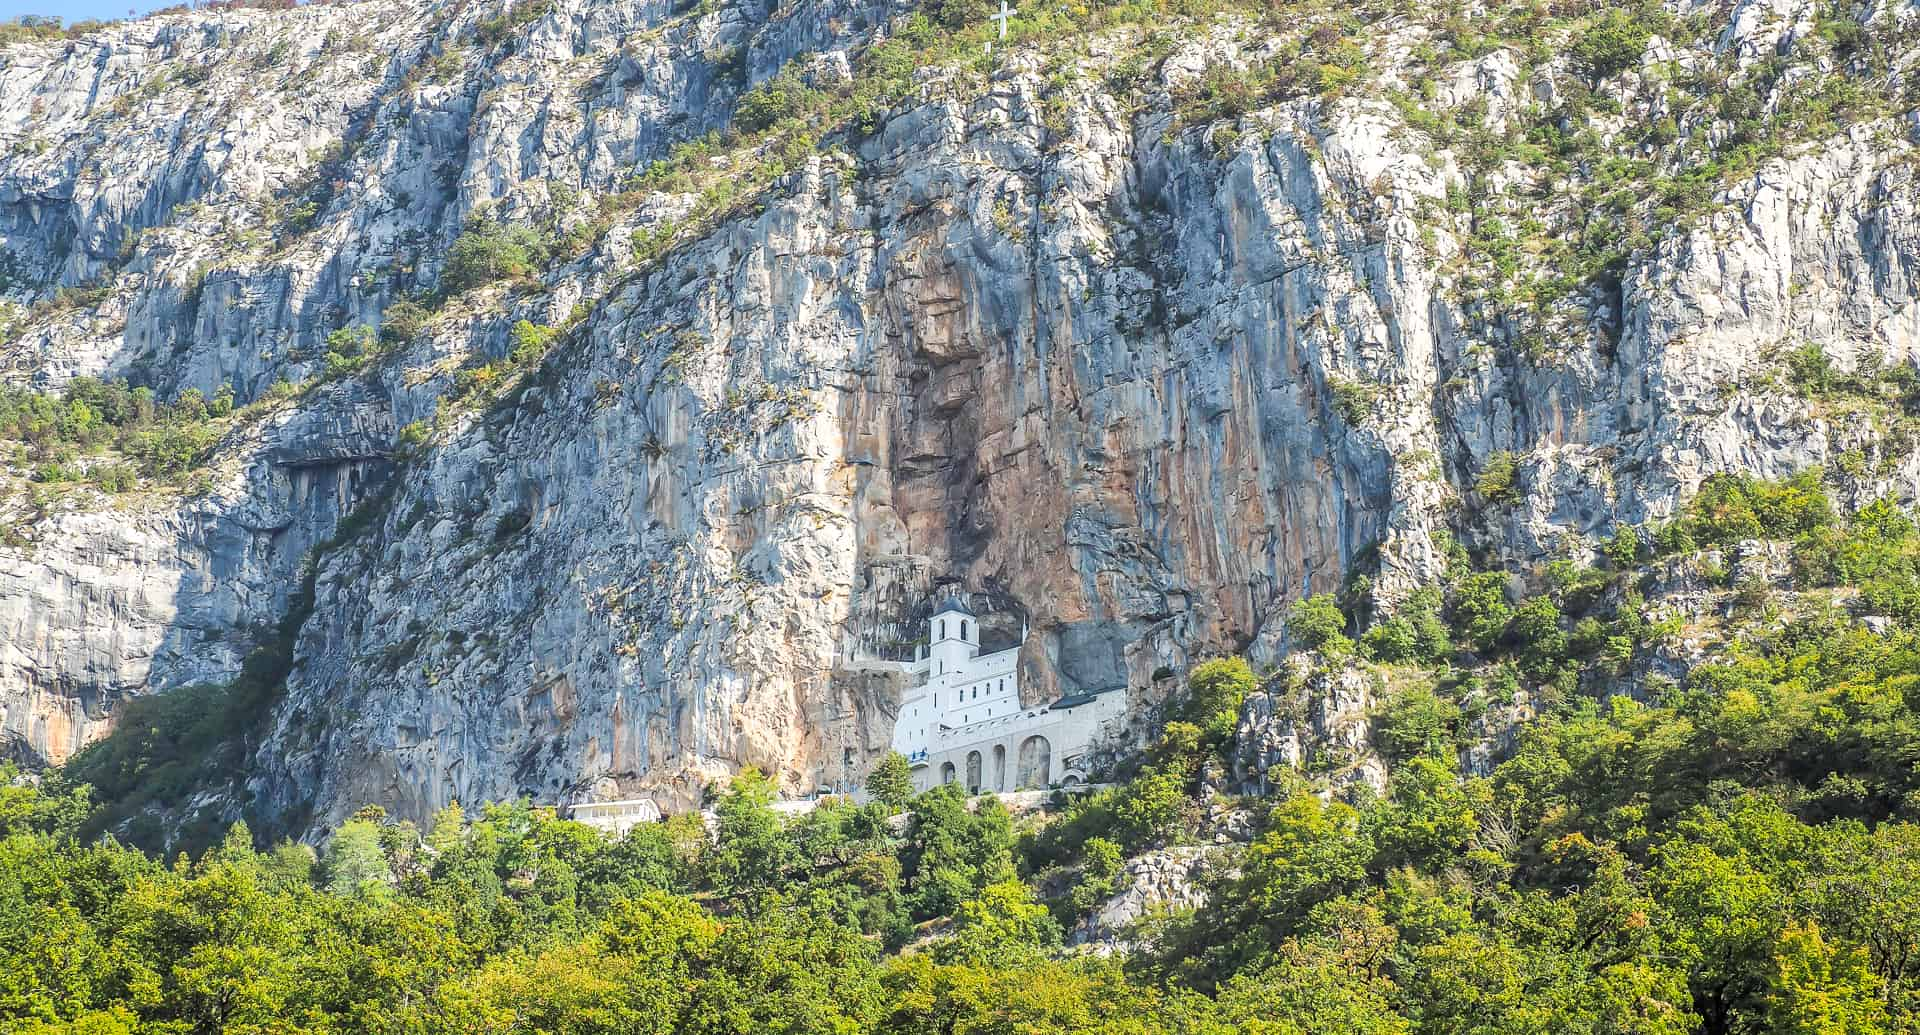 If you're looking to take an Ostrog Monastery tour or travel from Podgorica to Ostrog Monastery or Kotor to Ostrog Monastery, this article has all the details!